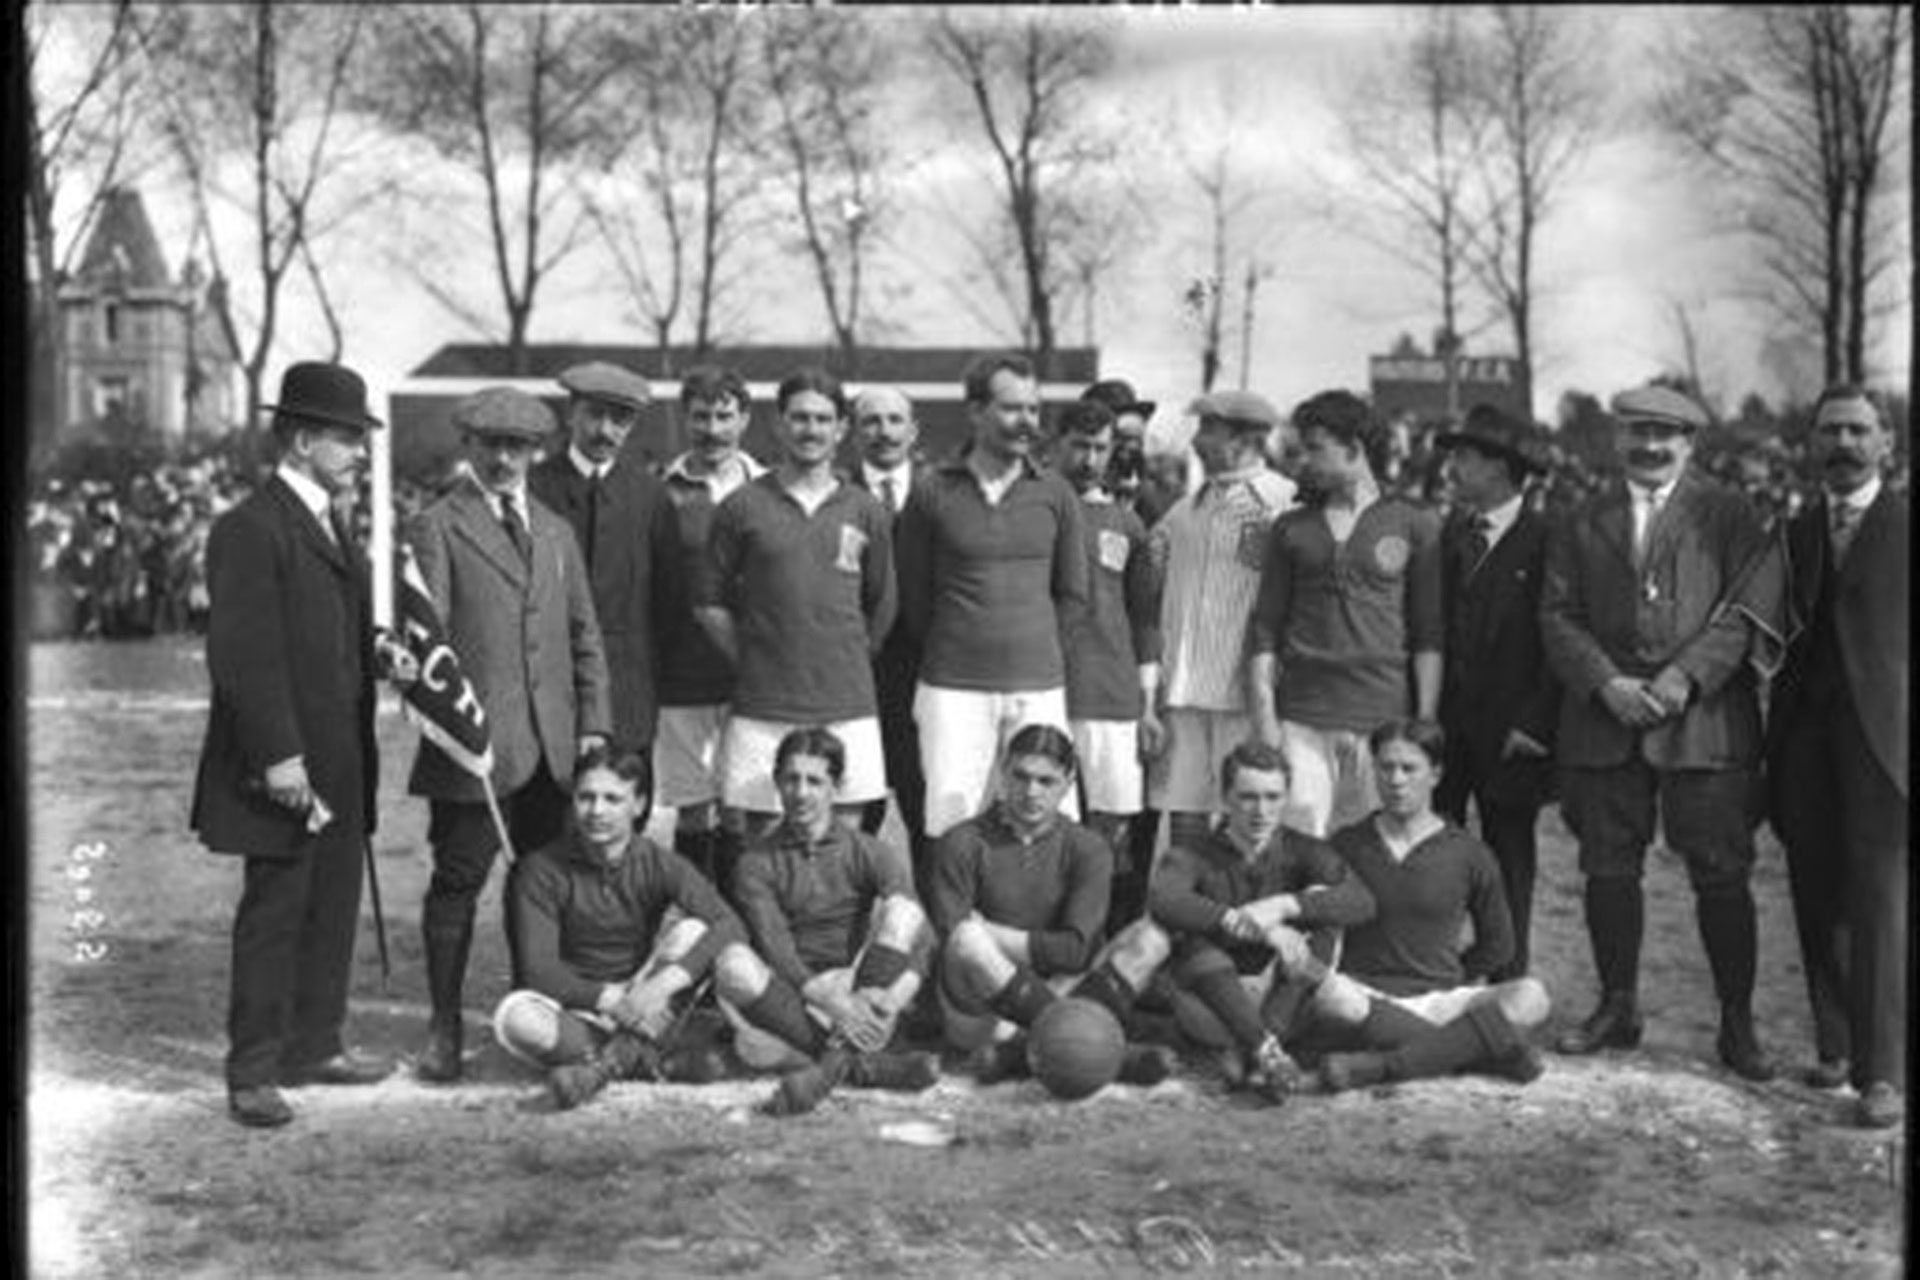 Explore Europeana's Football Heritage Mini-Exhibition